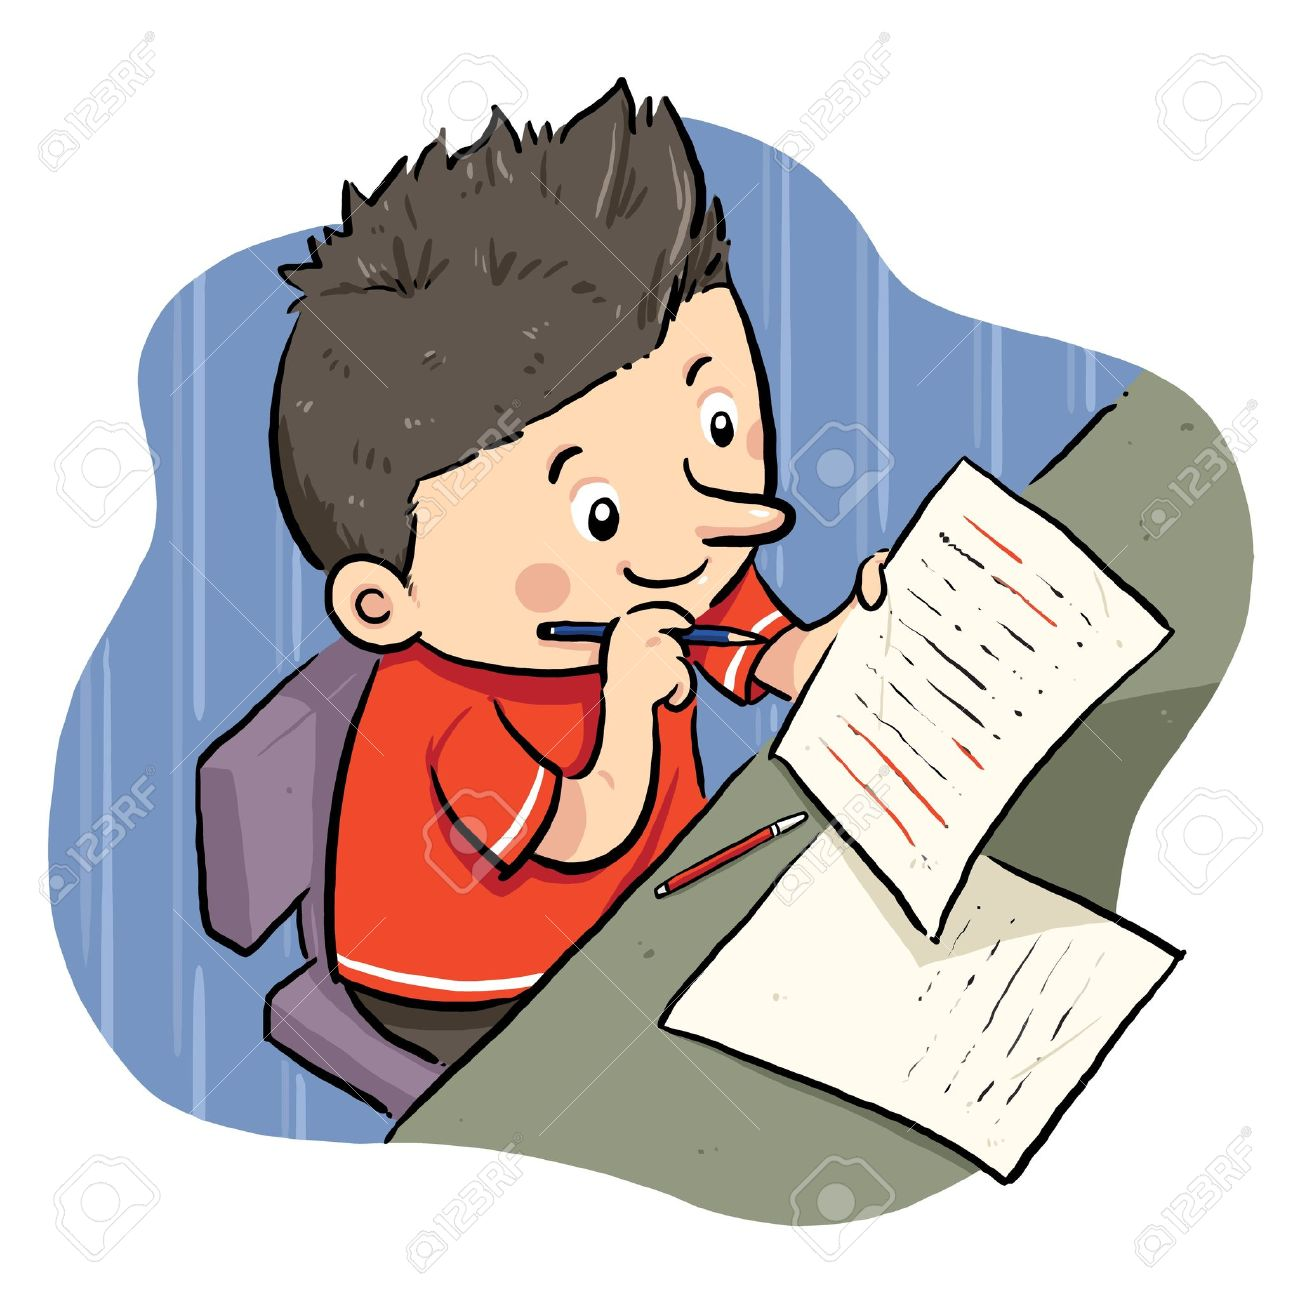 children doing homework clipart - clipground